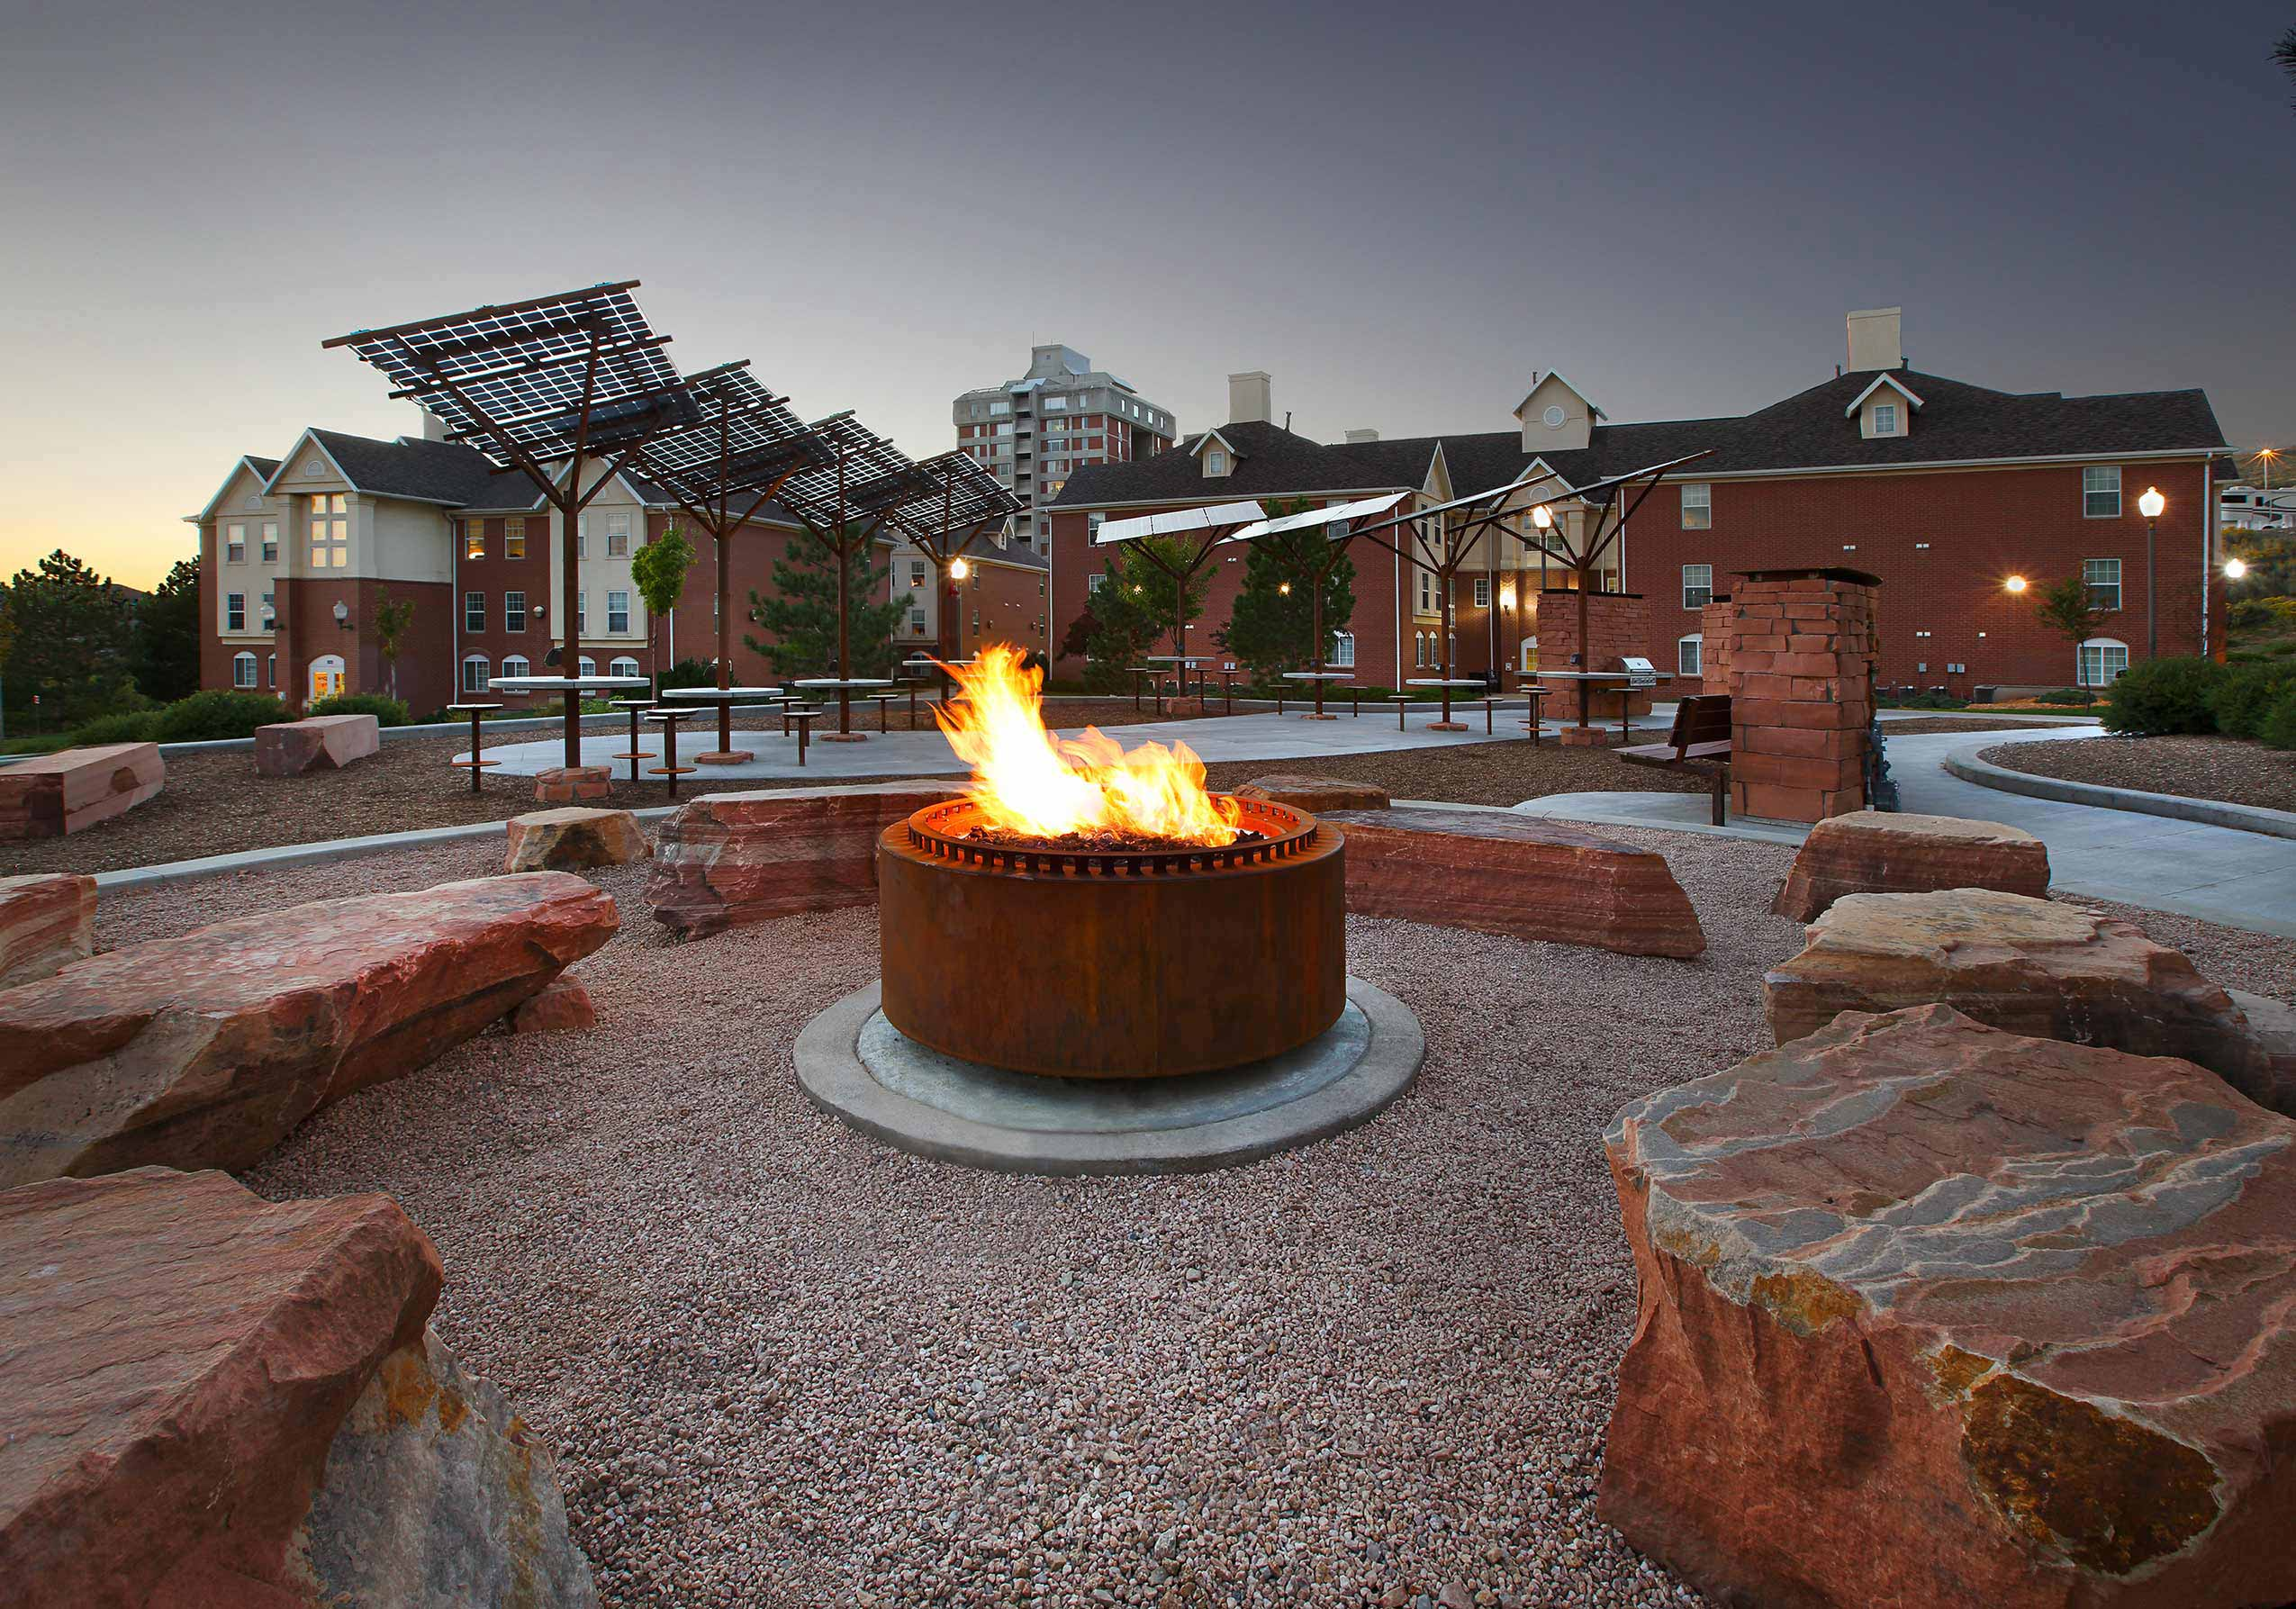 University of Utah Shoreline Pavilion Landscape Architecture